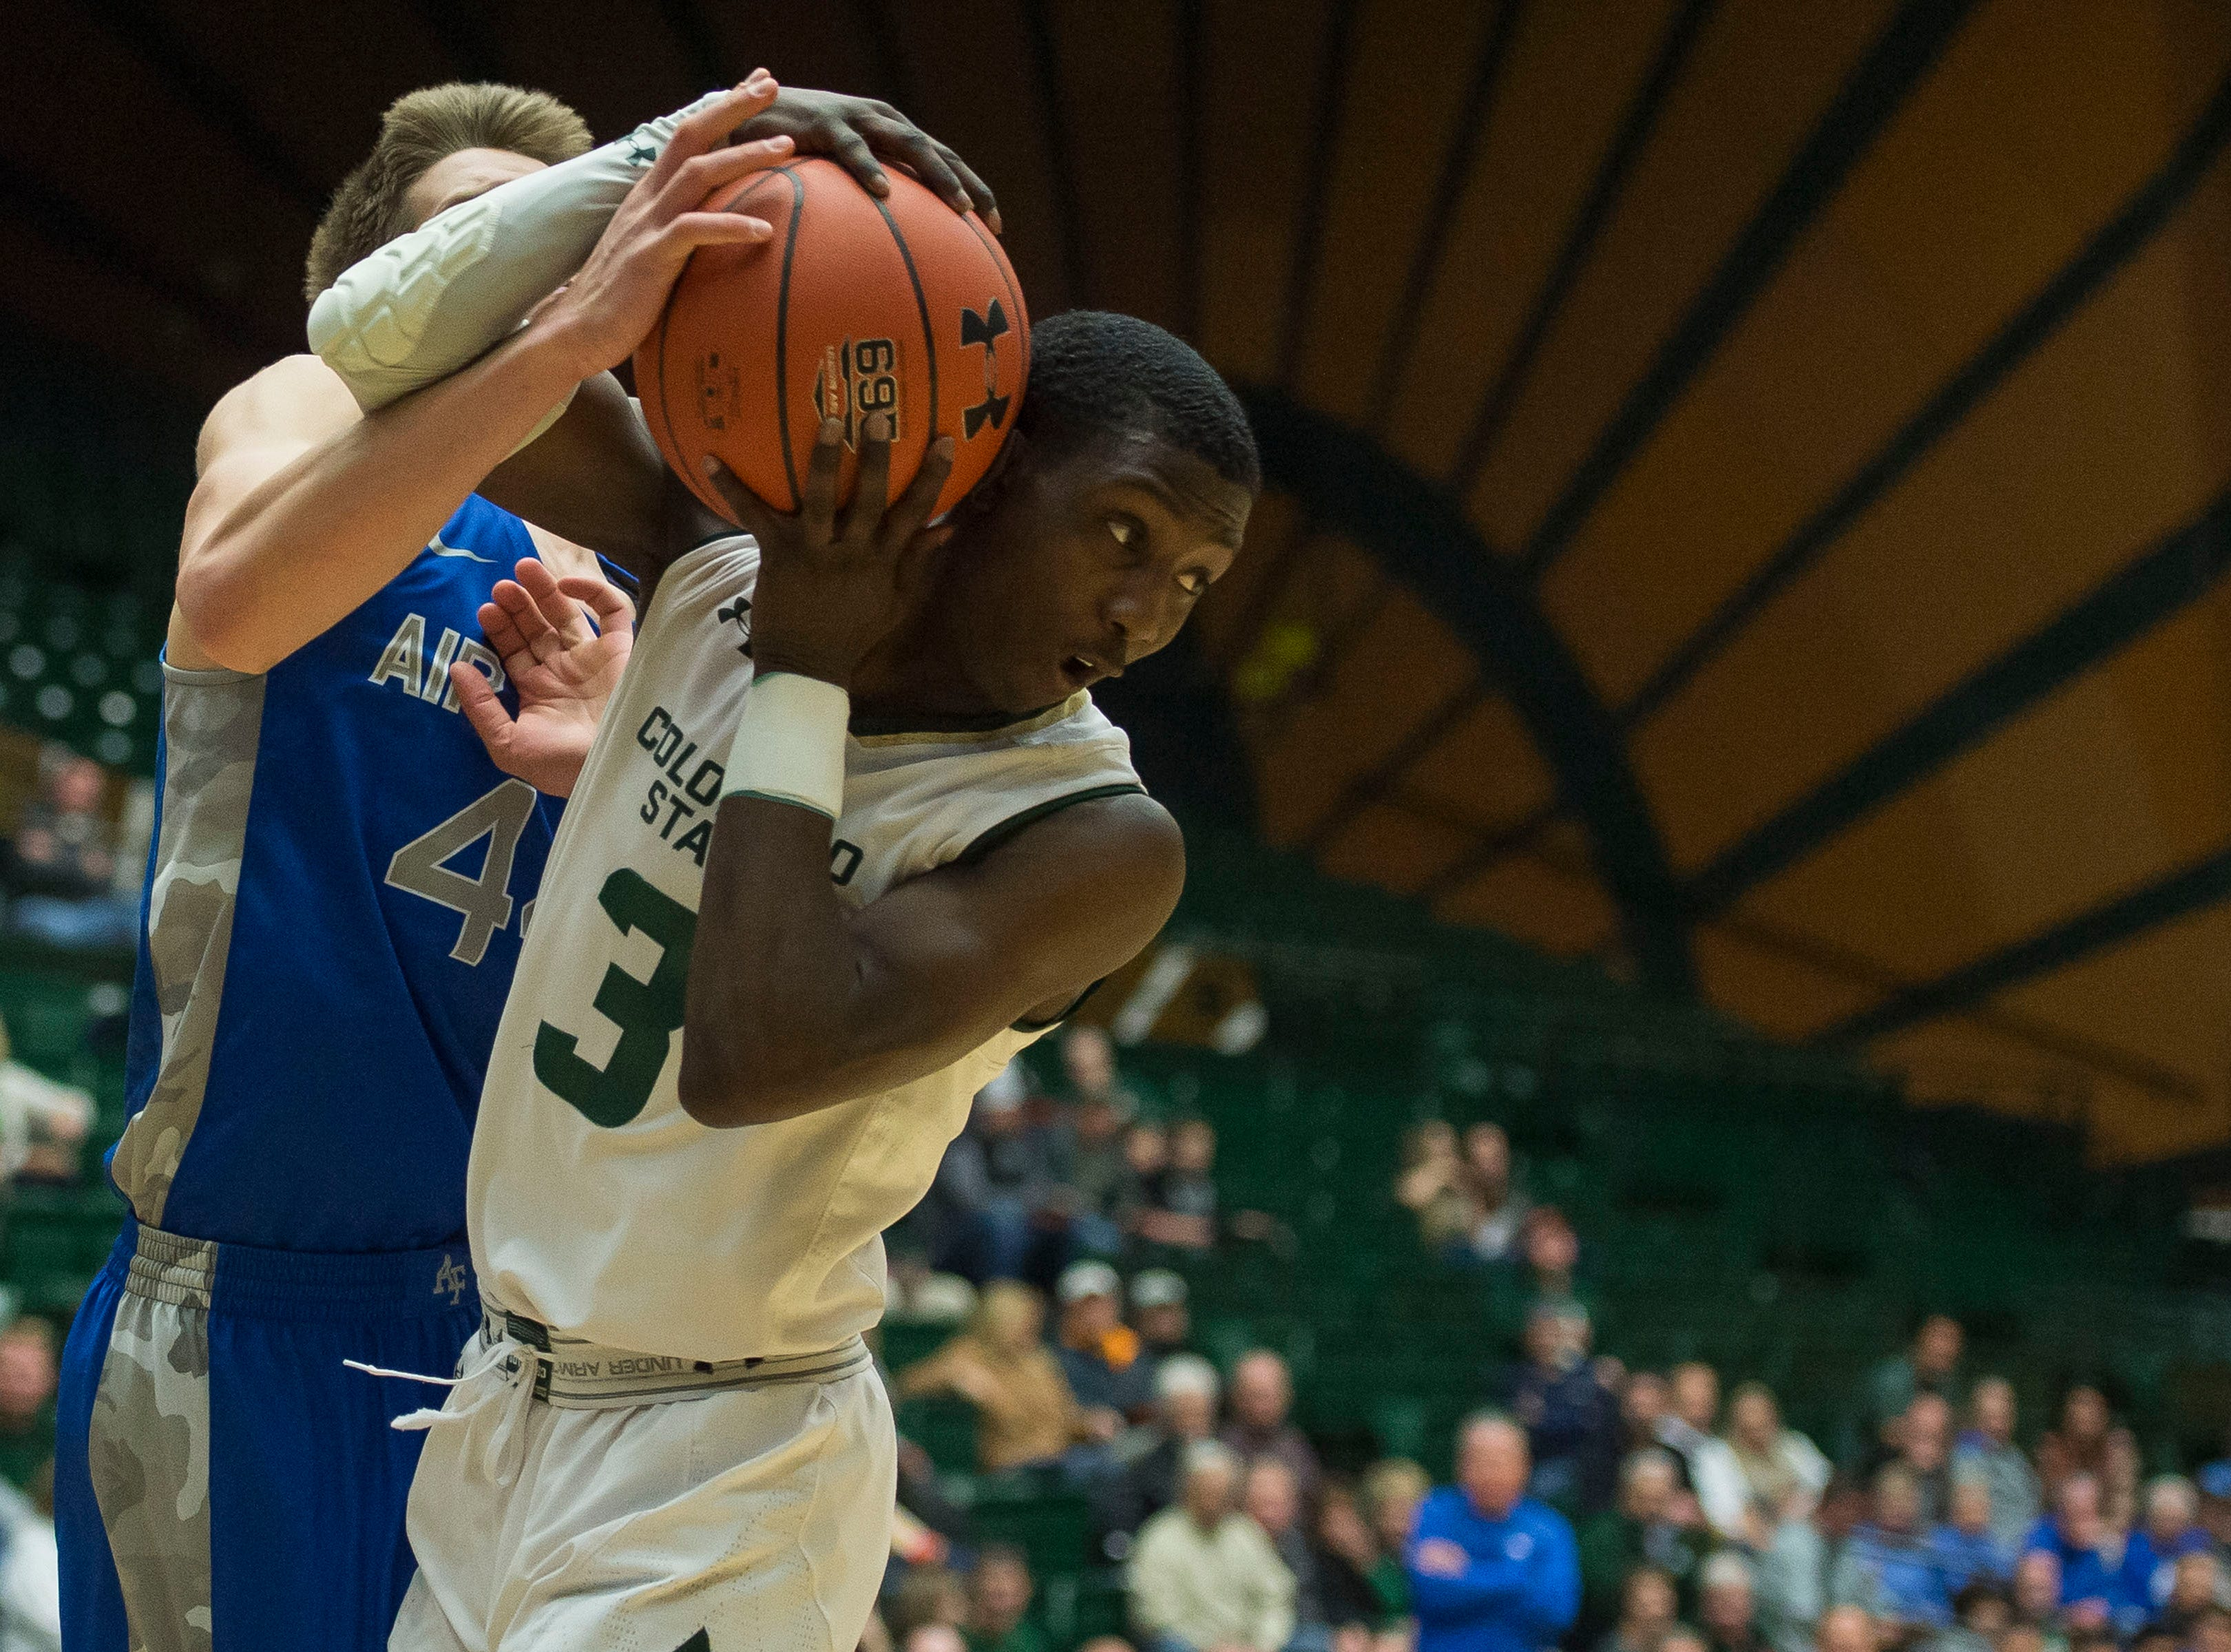 Colorado State University freshman guard Kendle Moore (3) steals the ball from Air Force Academy sophomore guard Keaton Van Soelen (44) on Tuesday, Jan. 8, 2019, at Moby Arena in Fort Collins, Colo.